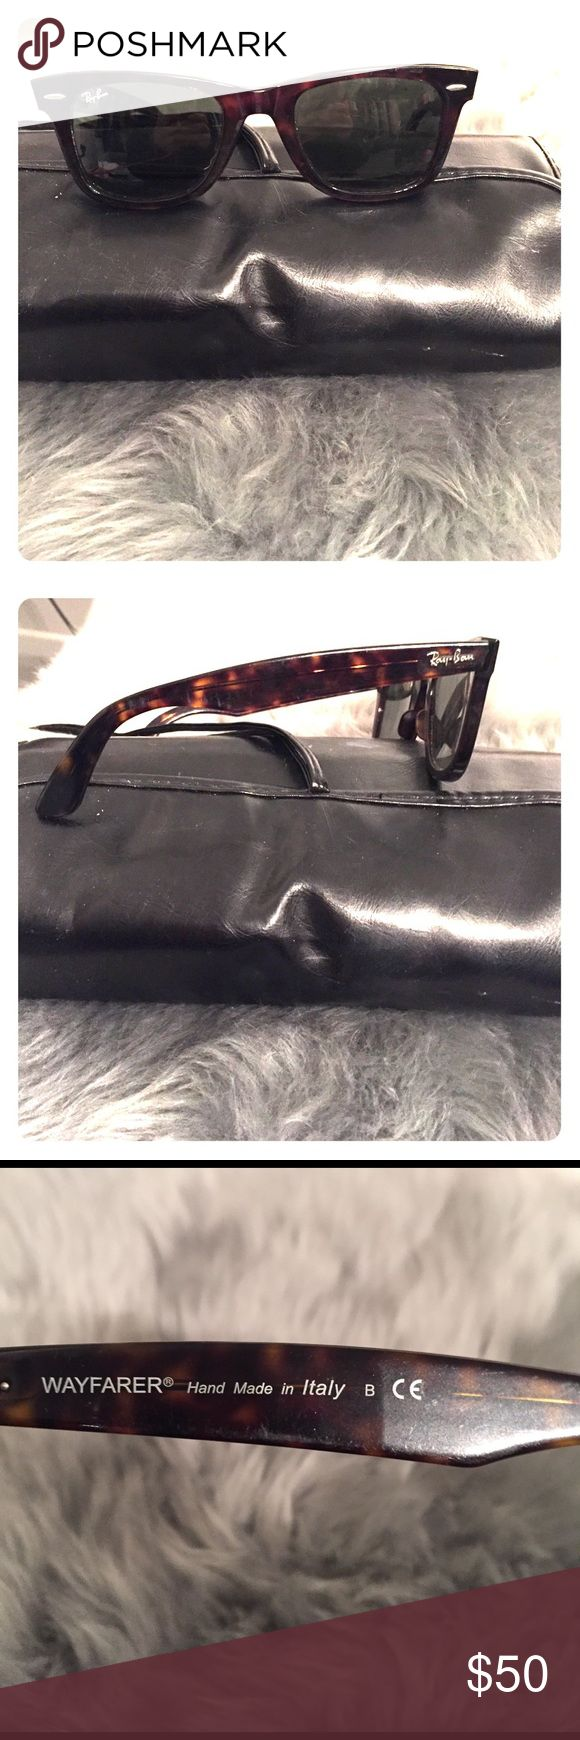 Ray ban wayfarer men's sunglasses Slightly used men's wayfarer ray bans turtle shell. Some scratching on lenses from use. Ray-Ban Accessories Sunglasses